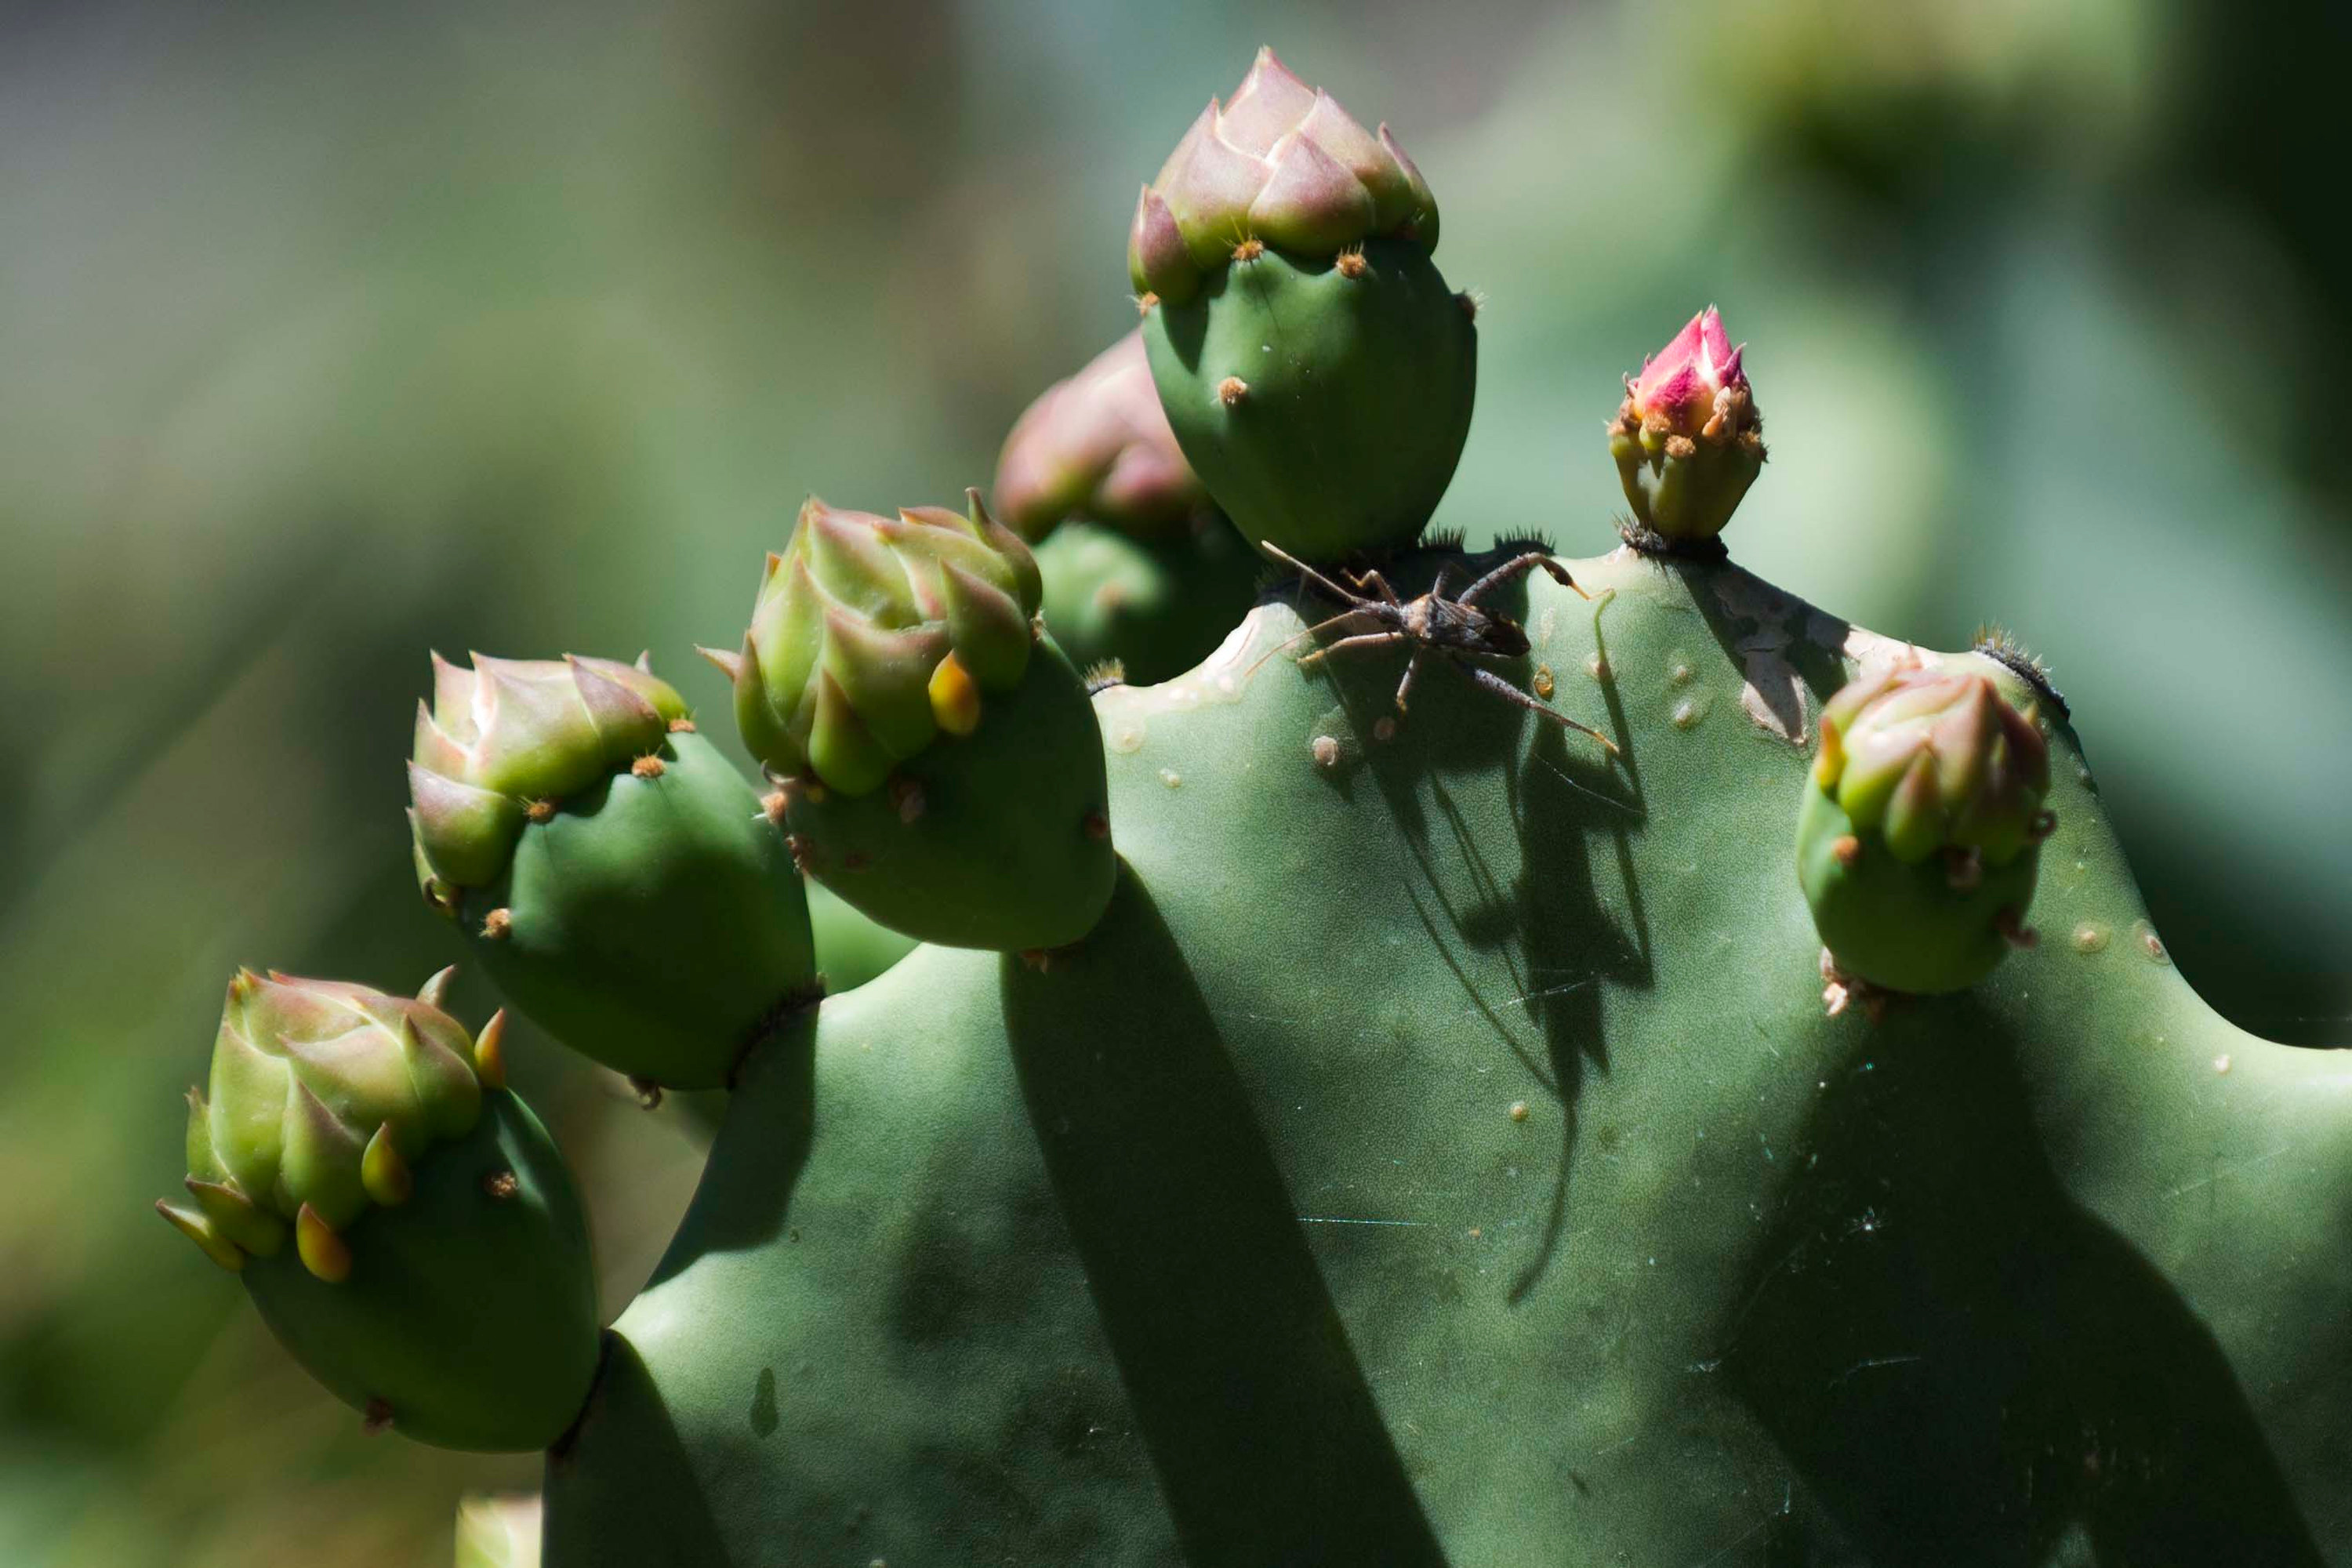 A blooming cactus, with pink flowers and an insect with long legs.